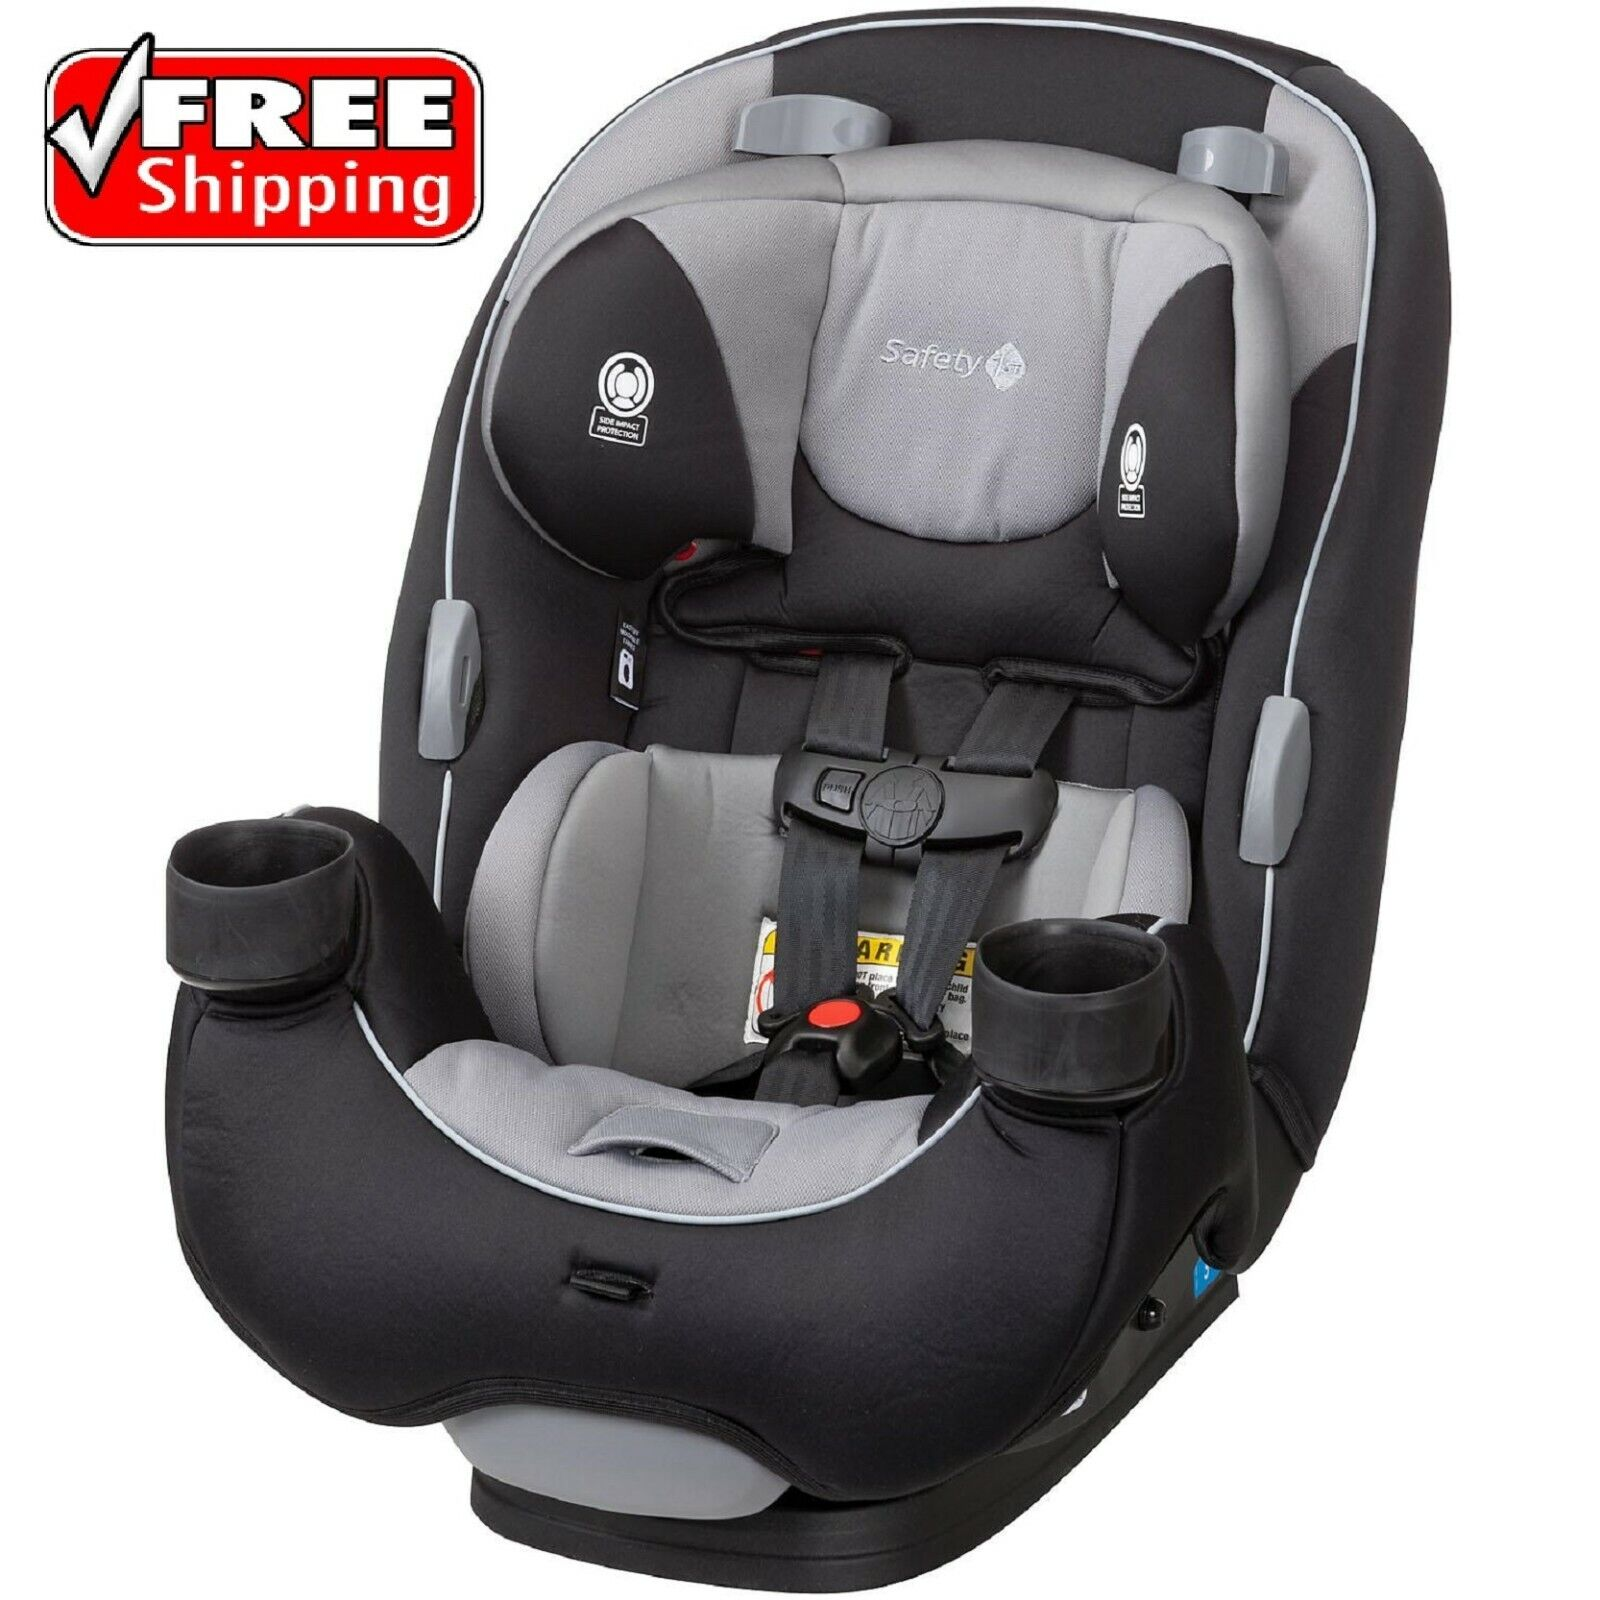 Safety 1st EverFit 3-in-1 Convertible Car Seat Compass FREE